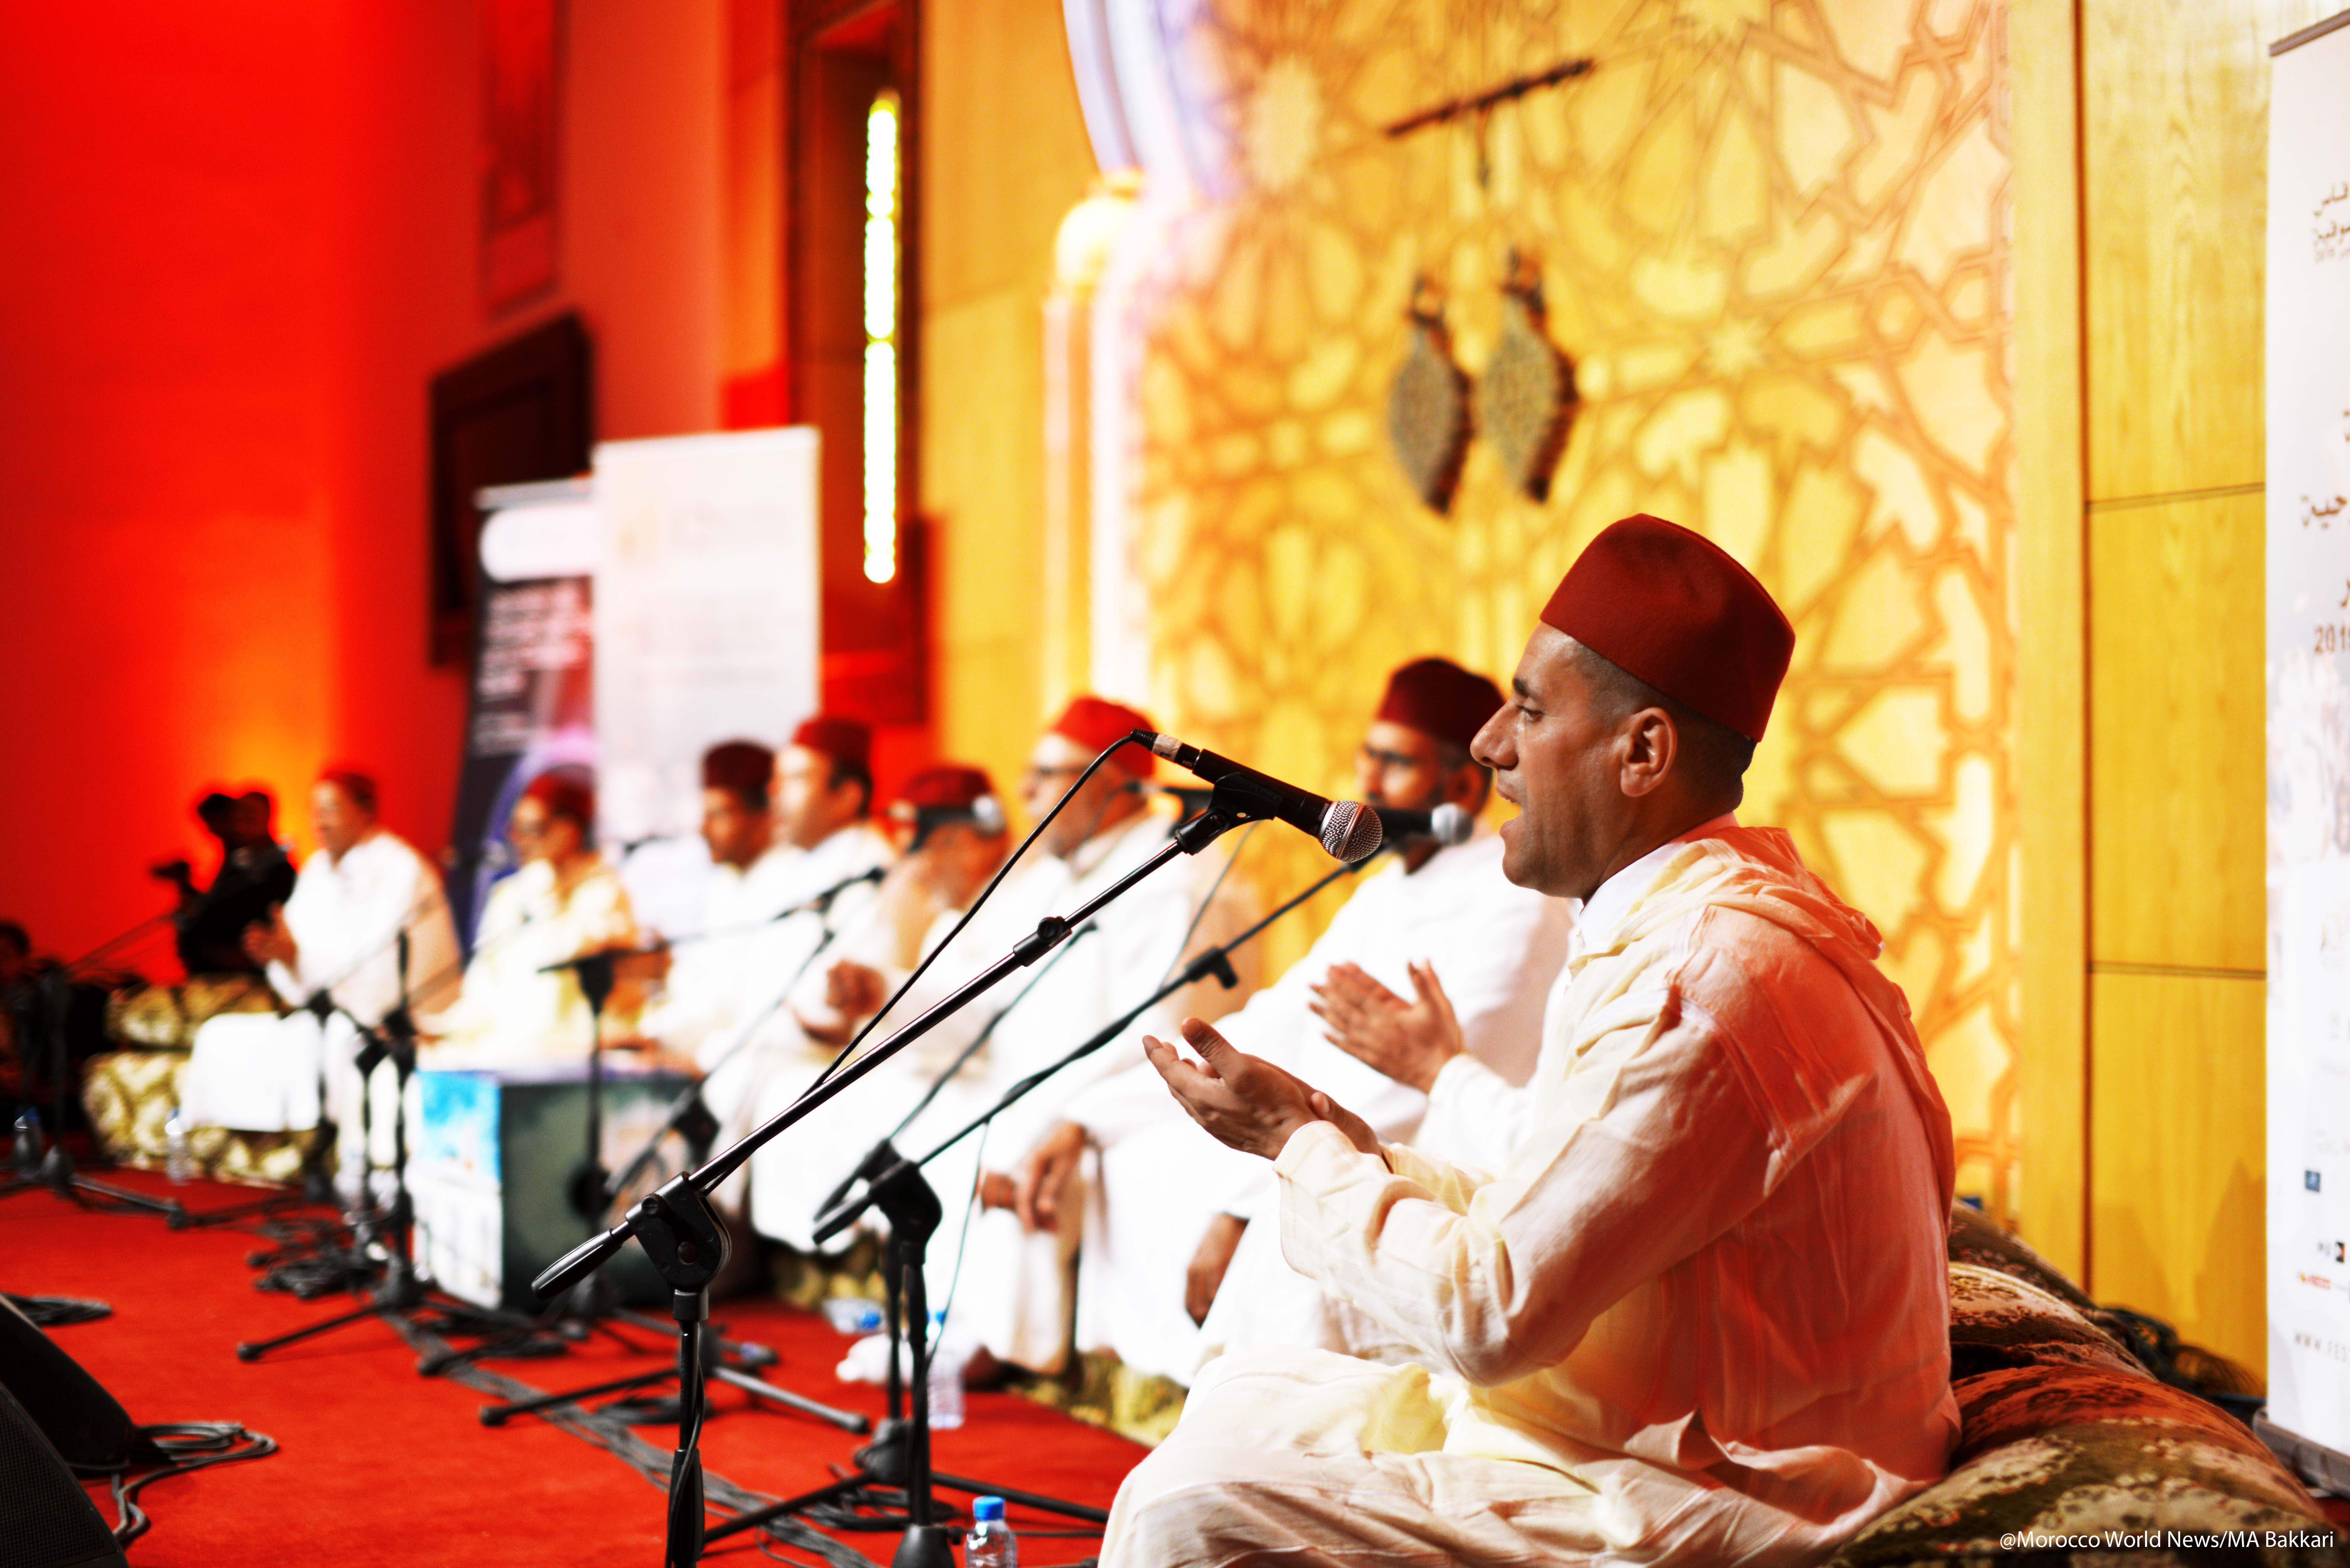 Sufi music group at the 12th Fez Festival of Sufi Culture Tariqa Sharqawiya